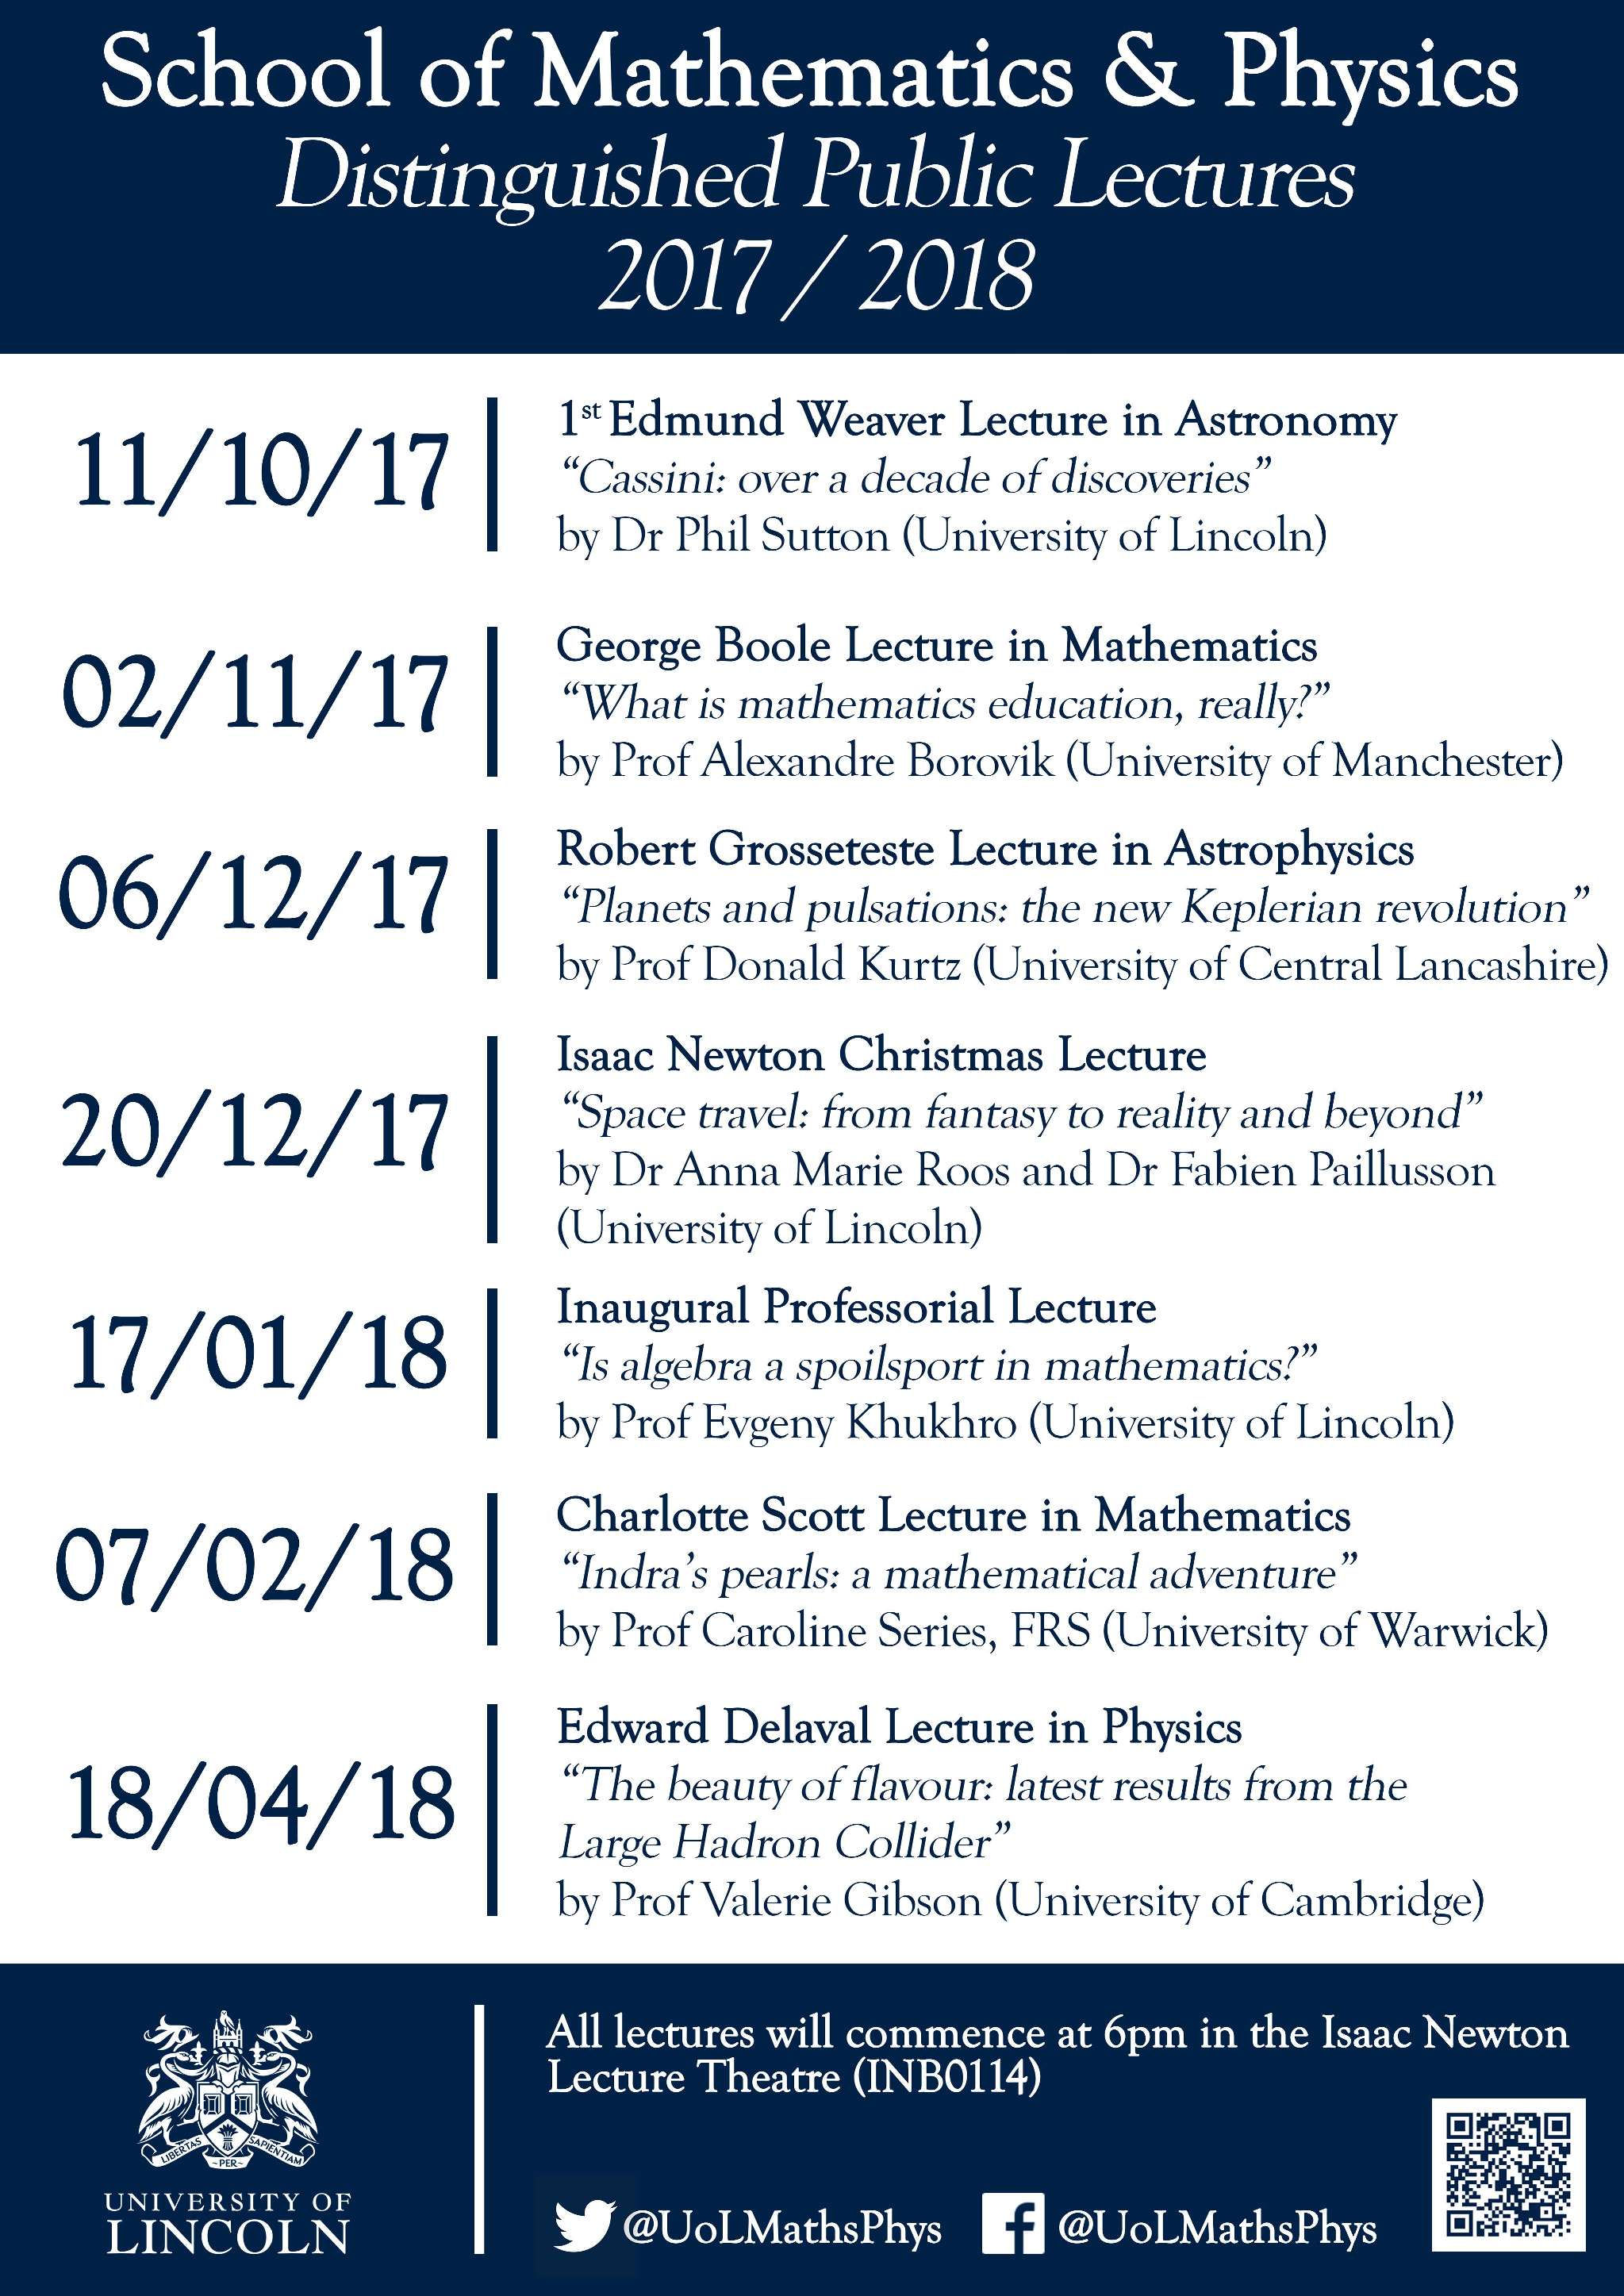 2017/18 Season – Distinguished Maths & Physics Public Lectures